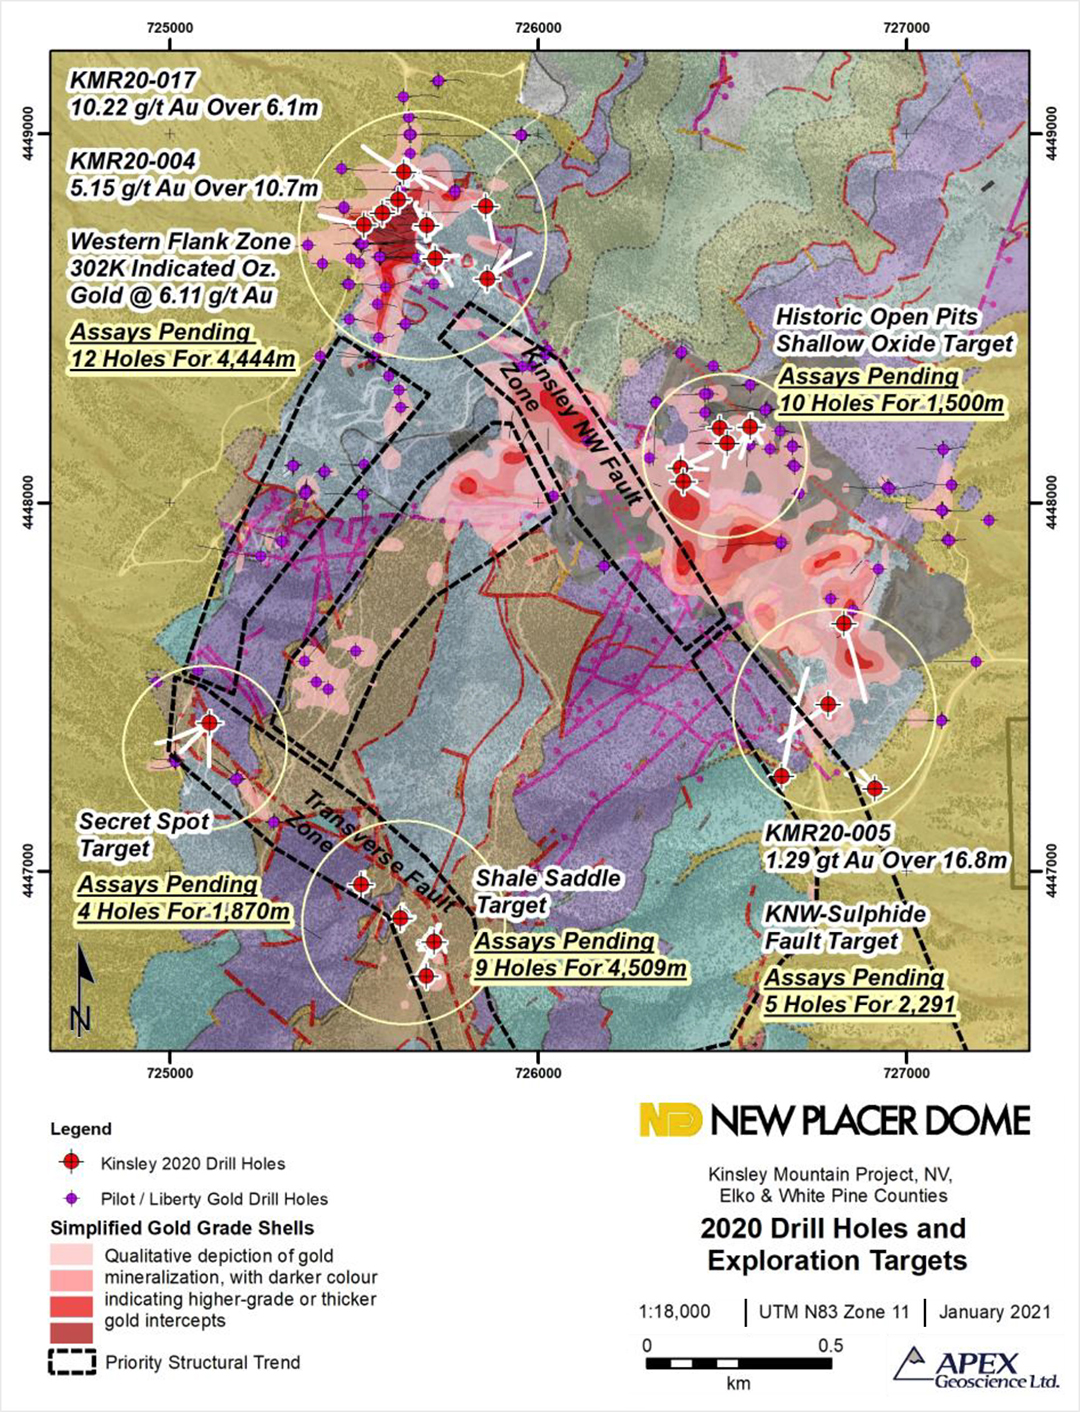 new-placer-dome-2020-drill-holes-exploration-targets